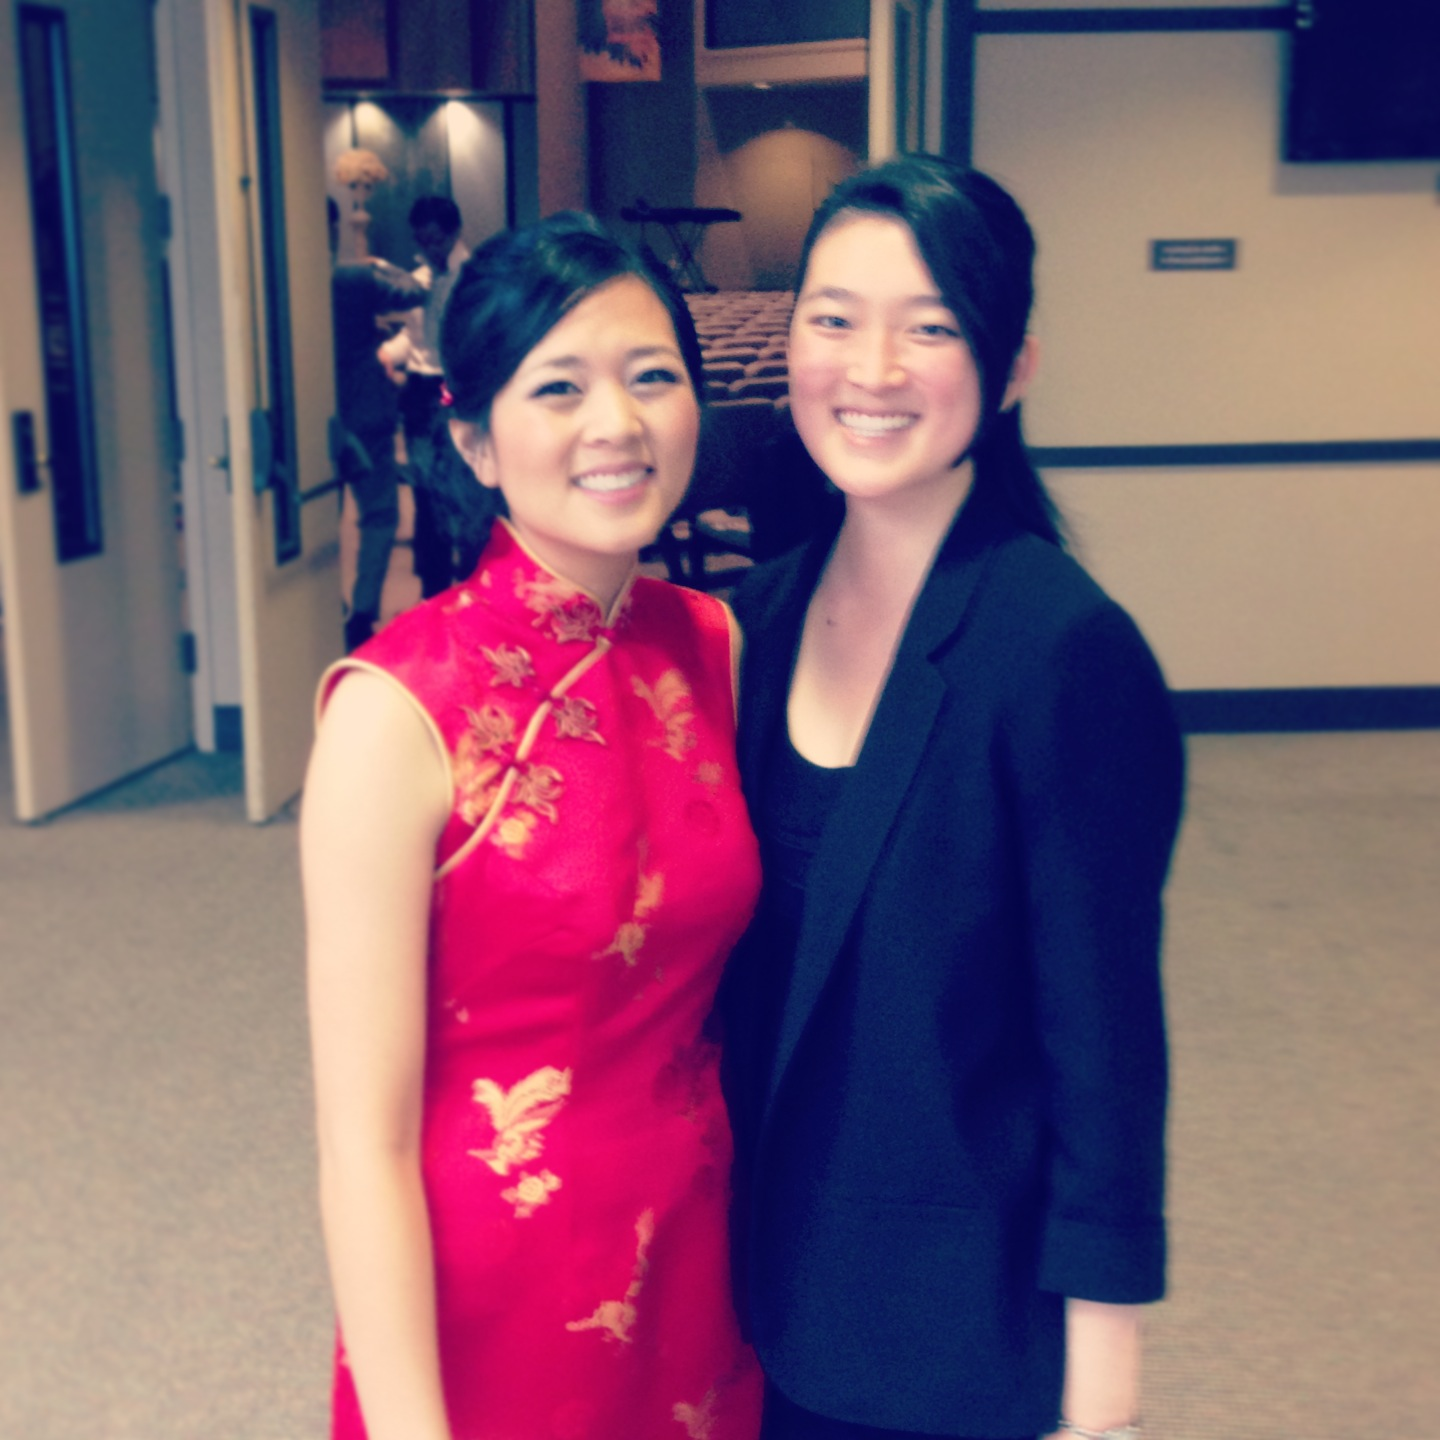 A little blurry, but it's ok because I'm with the beautiful bride in her gorgeous traditional Chinese dress, just moments before the ceremony.